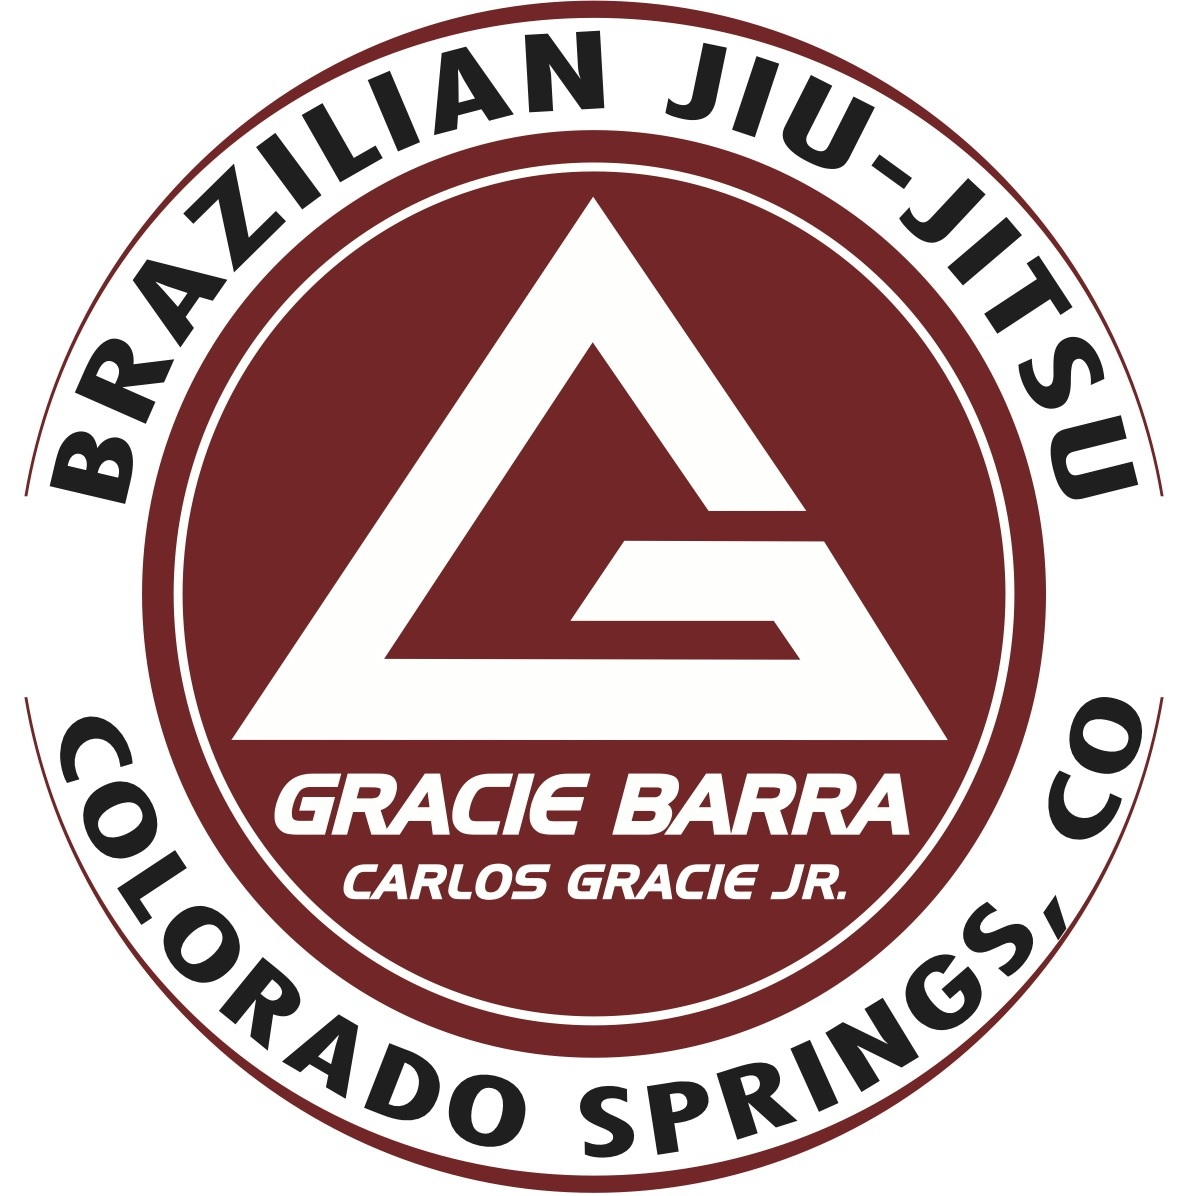 Gracie Barra Colorado Springs Brazilian Jiu-Jitsu